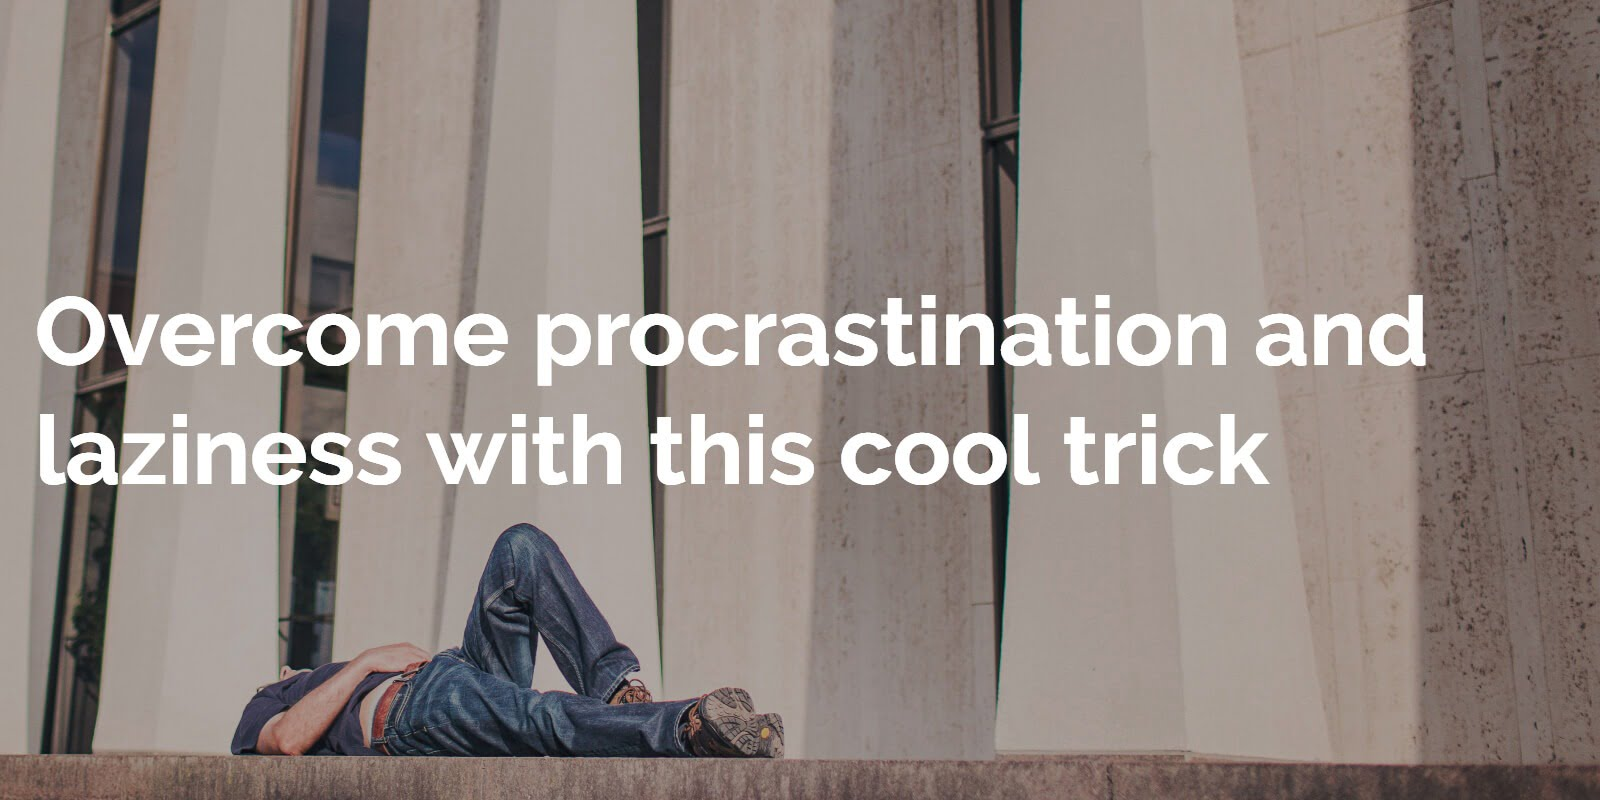 Overcome procrastination and laziness with this cool trick